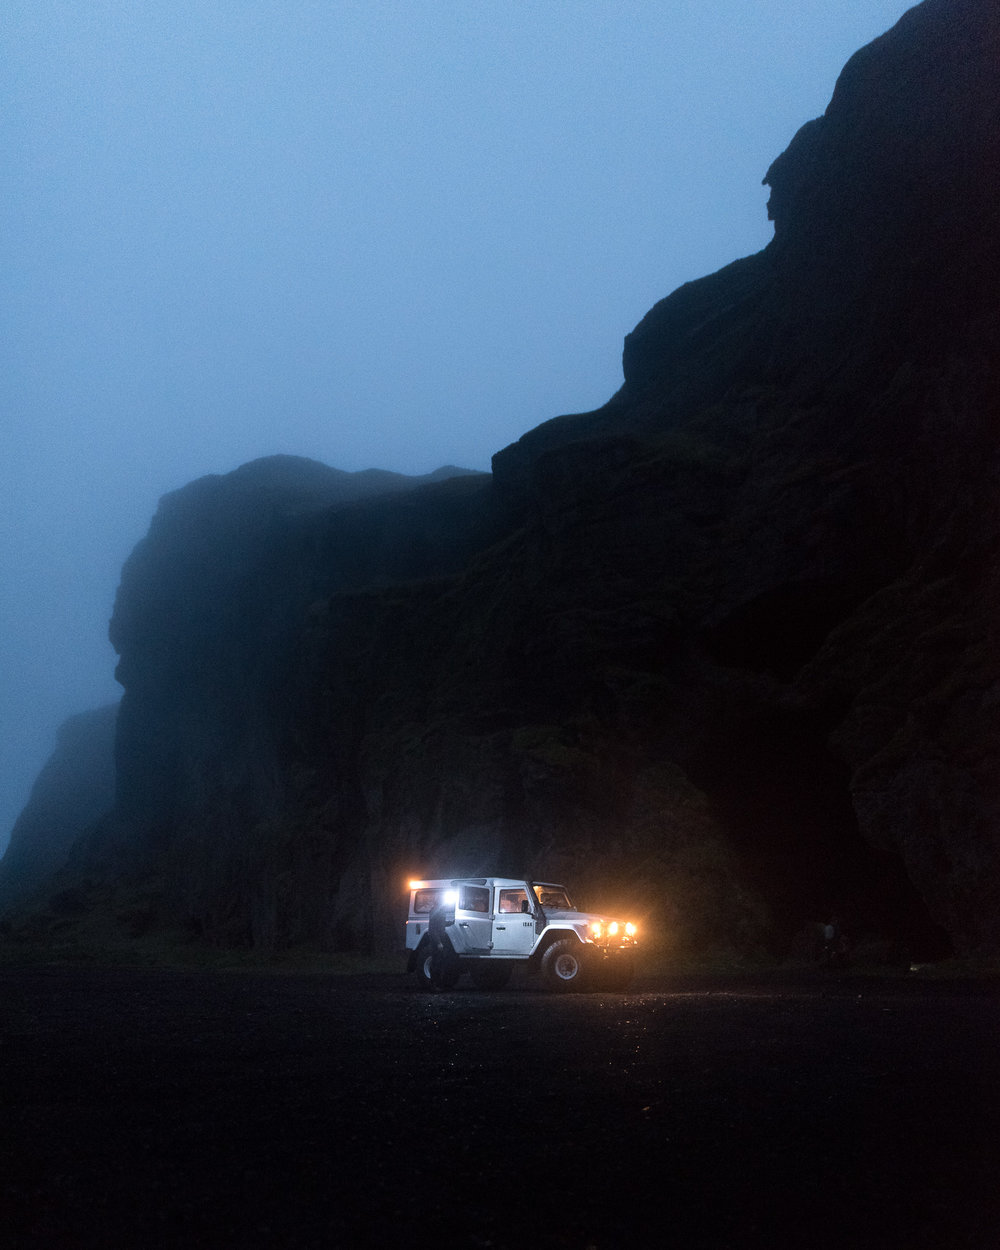 The mighty Landy on a foggy evening.